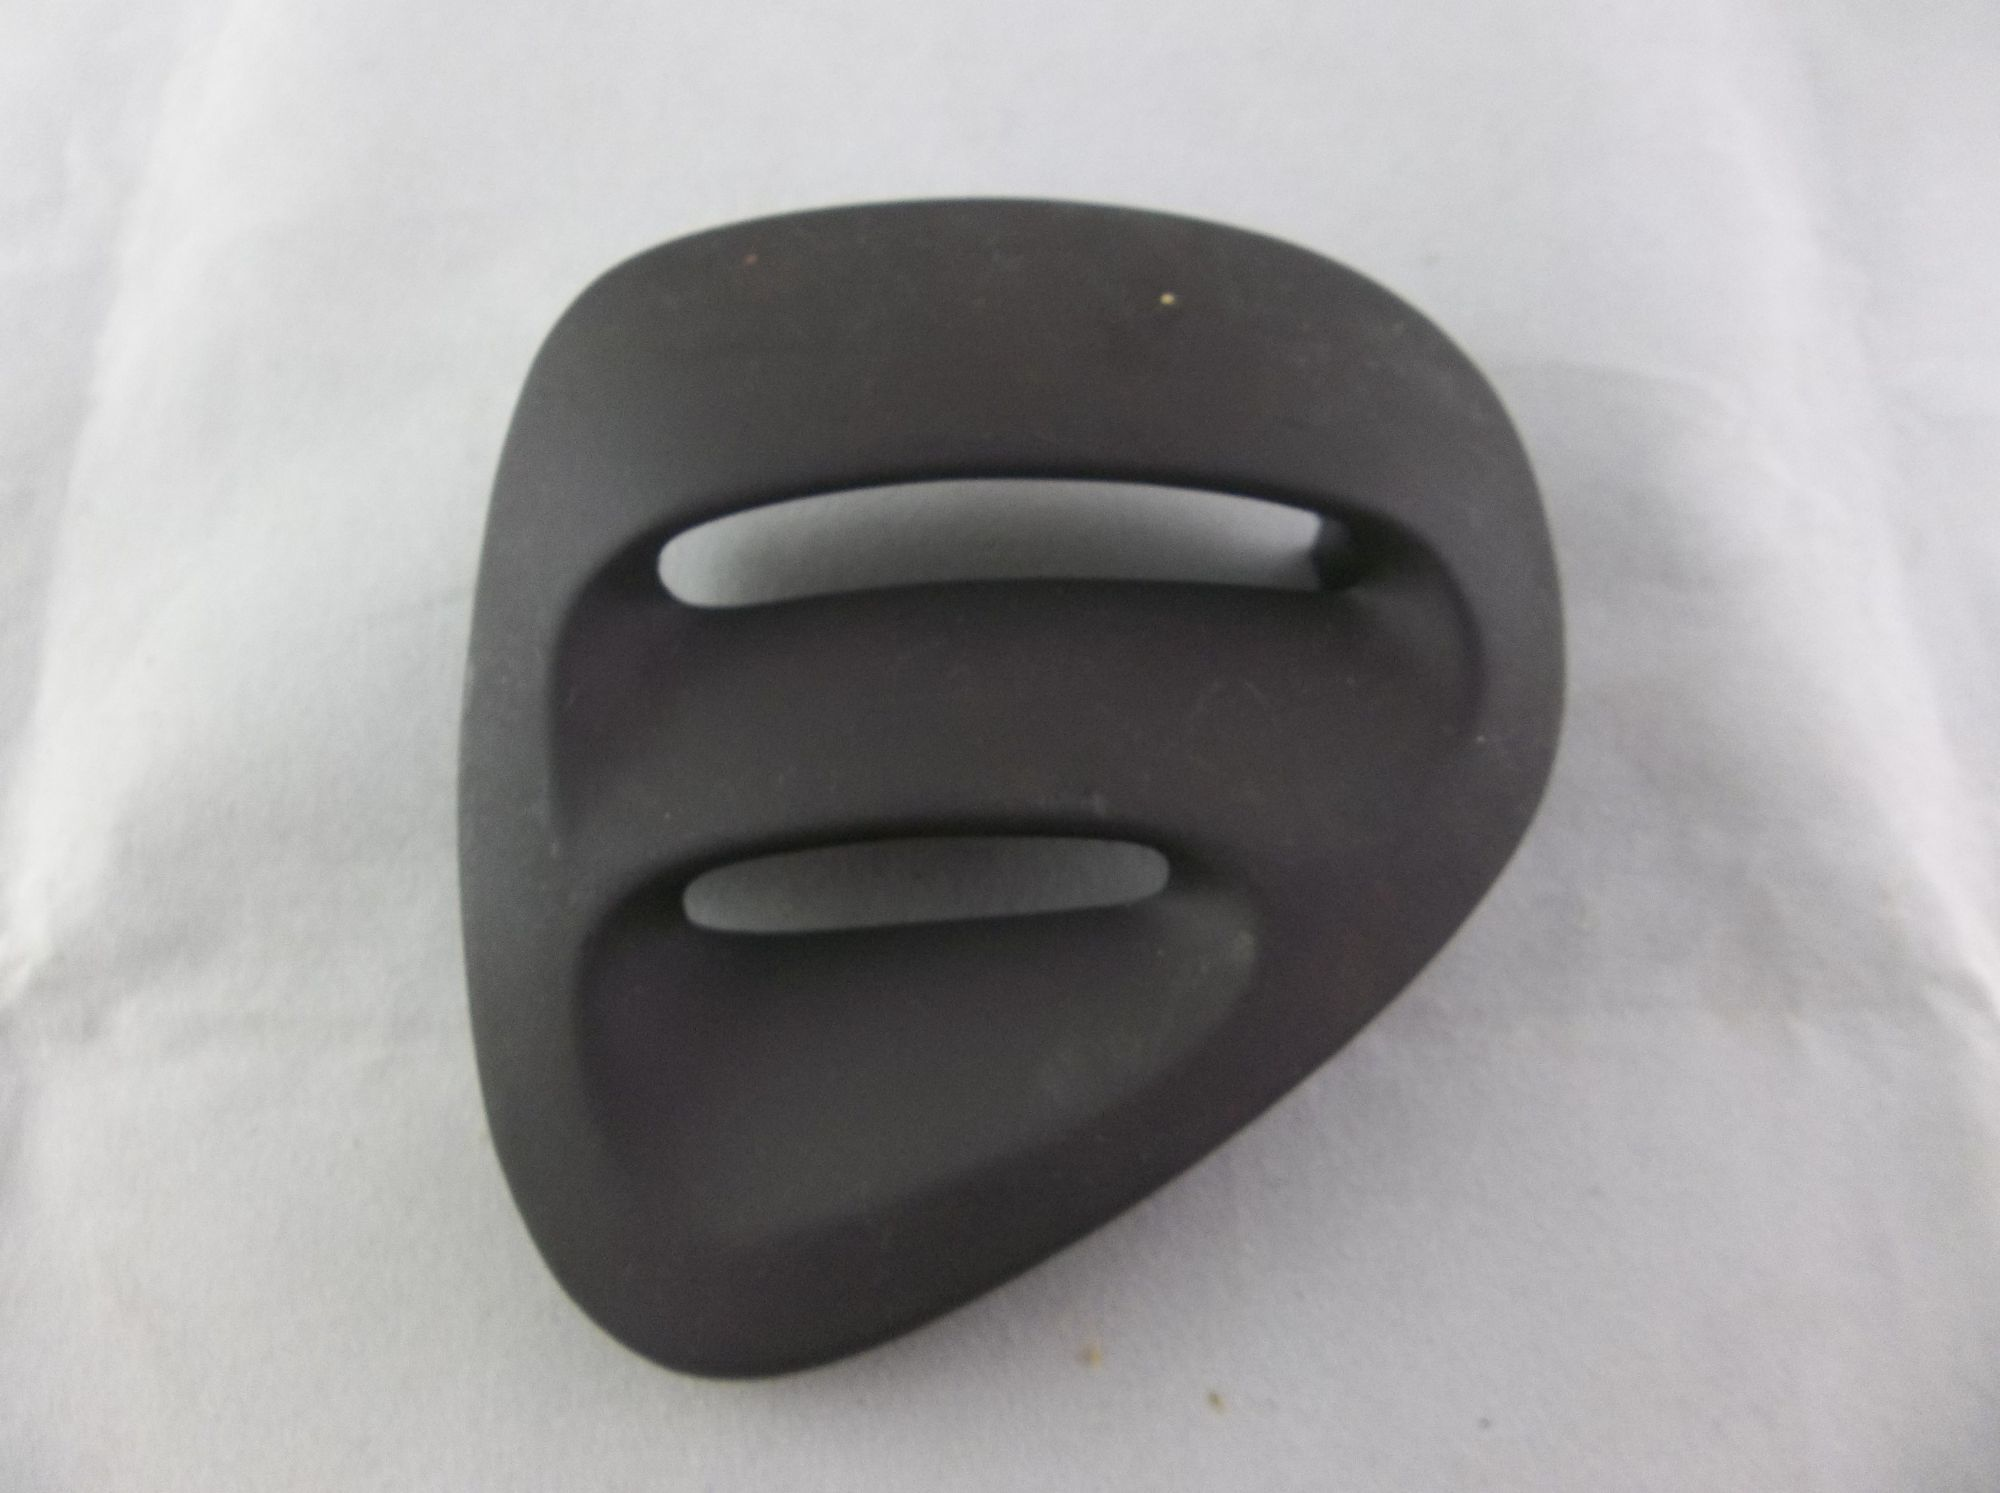 1996 1999 Ford Taurus Left Drivers Dash Corner Ac Vent Oem F6db 54046a77 A Ford Taurus Left Drivers Dahsboard Dash Ford Classic Cars Ac Vent Ford Parts